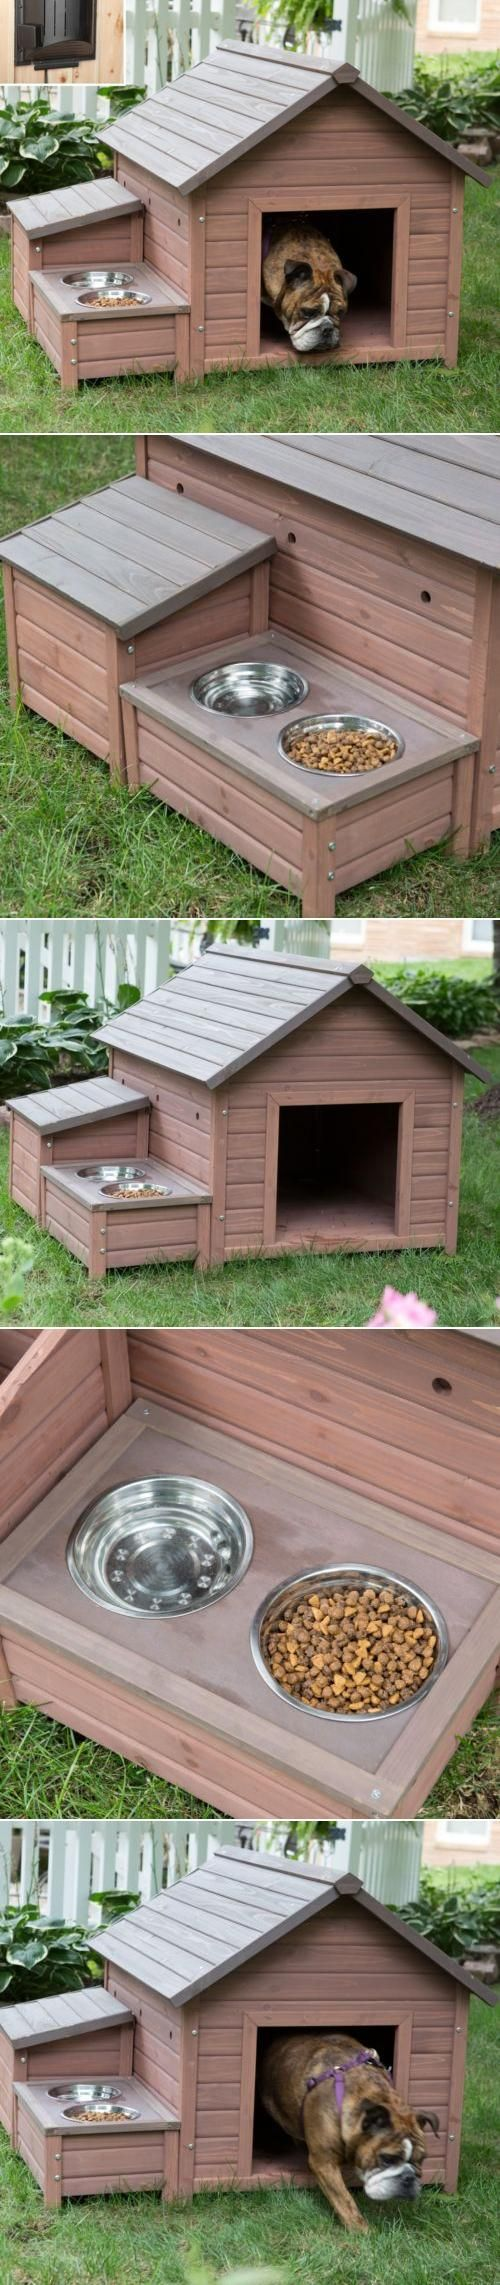 Best 25 In The Dog House Ideas On Pinterest Large Dog House